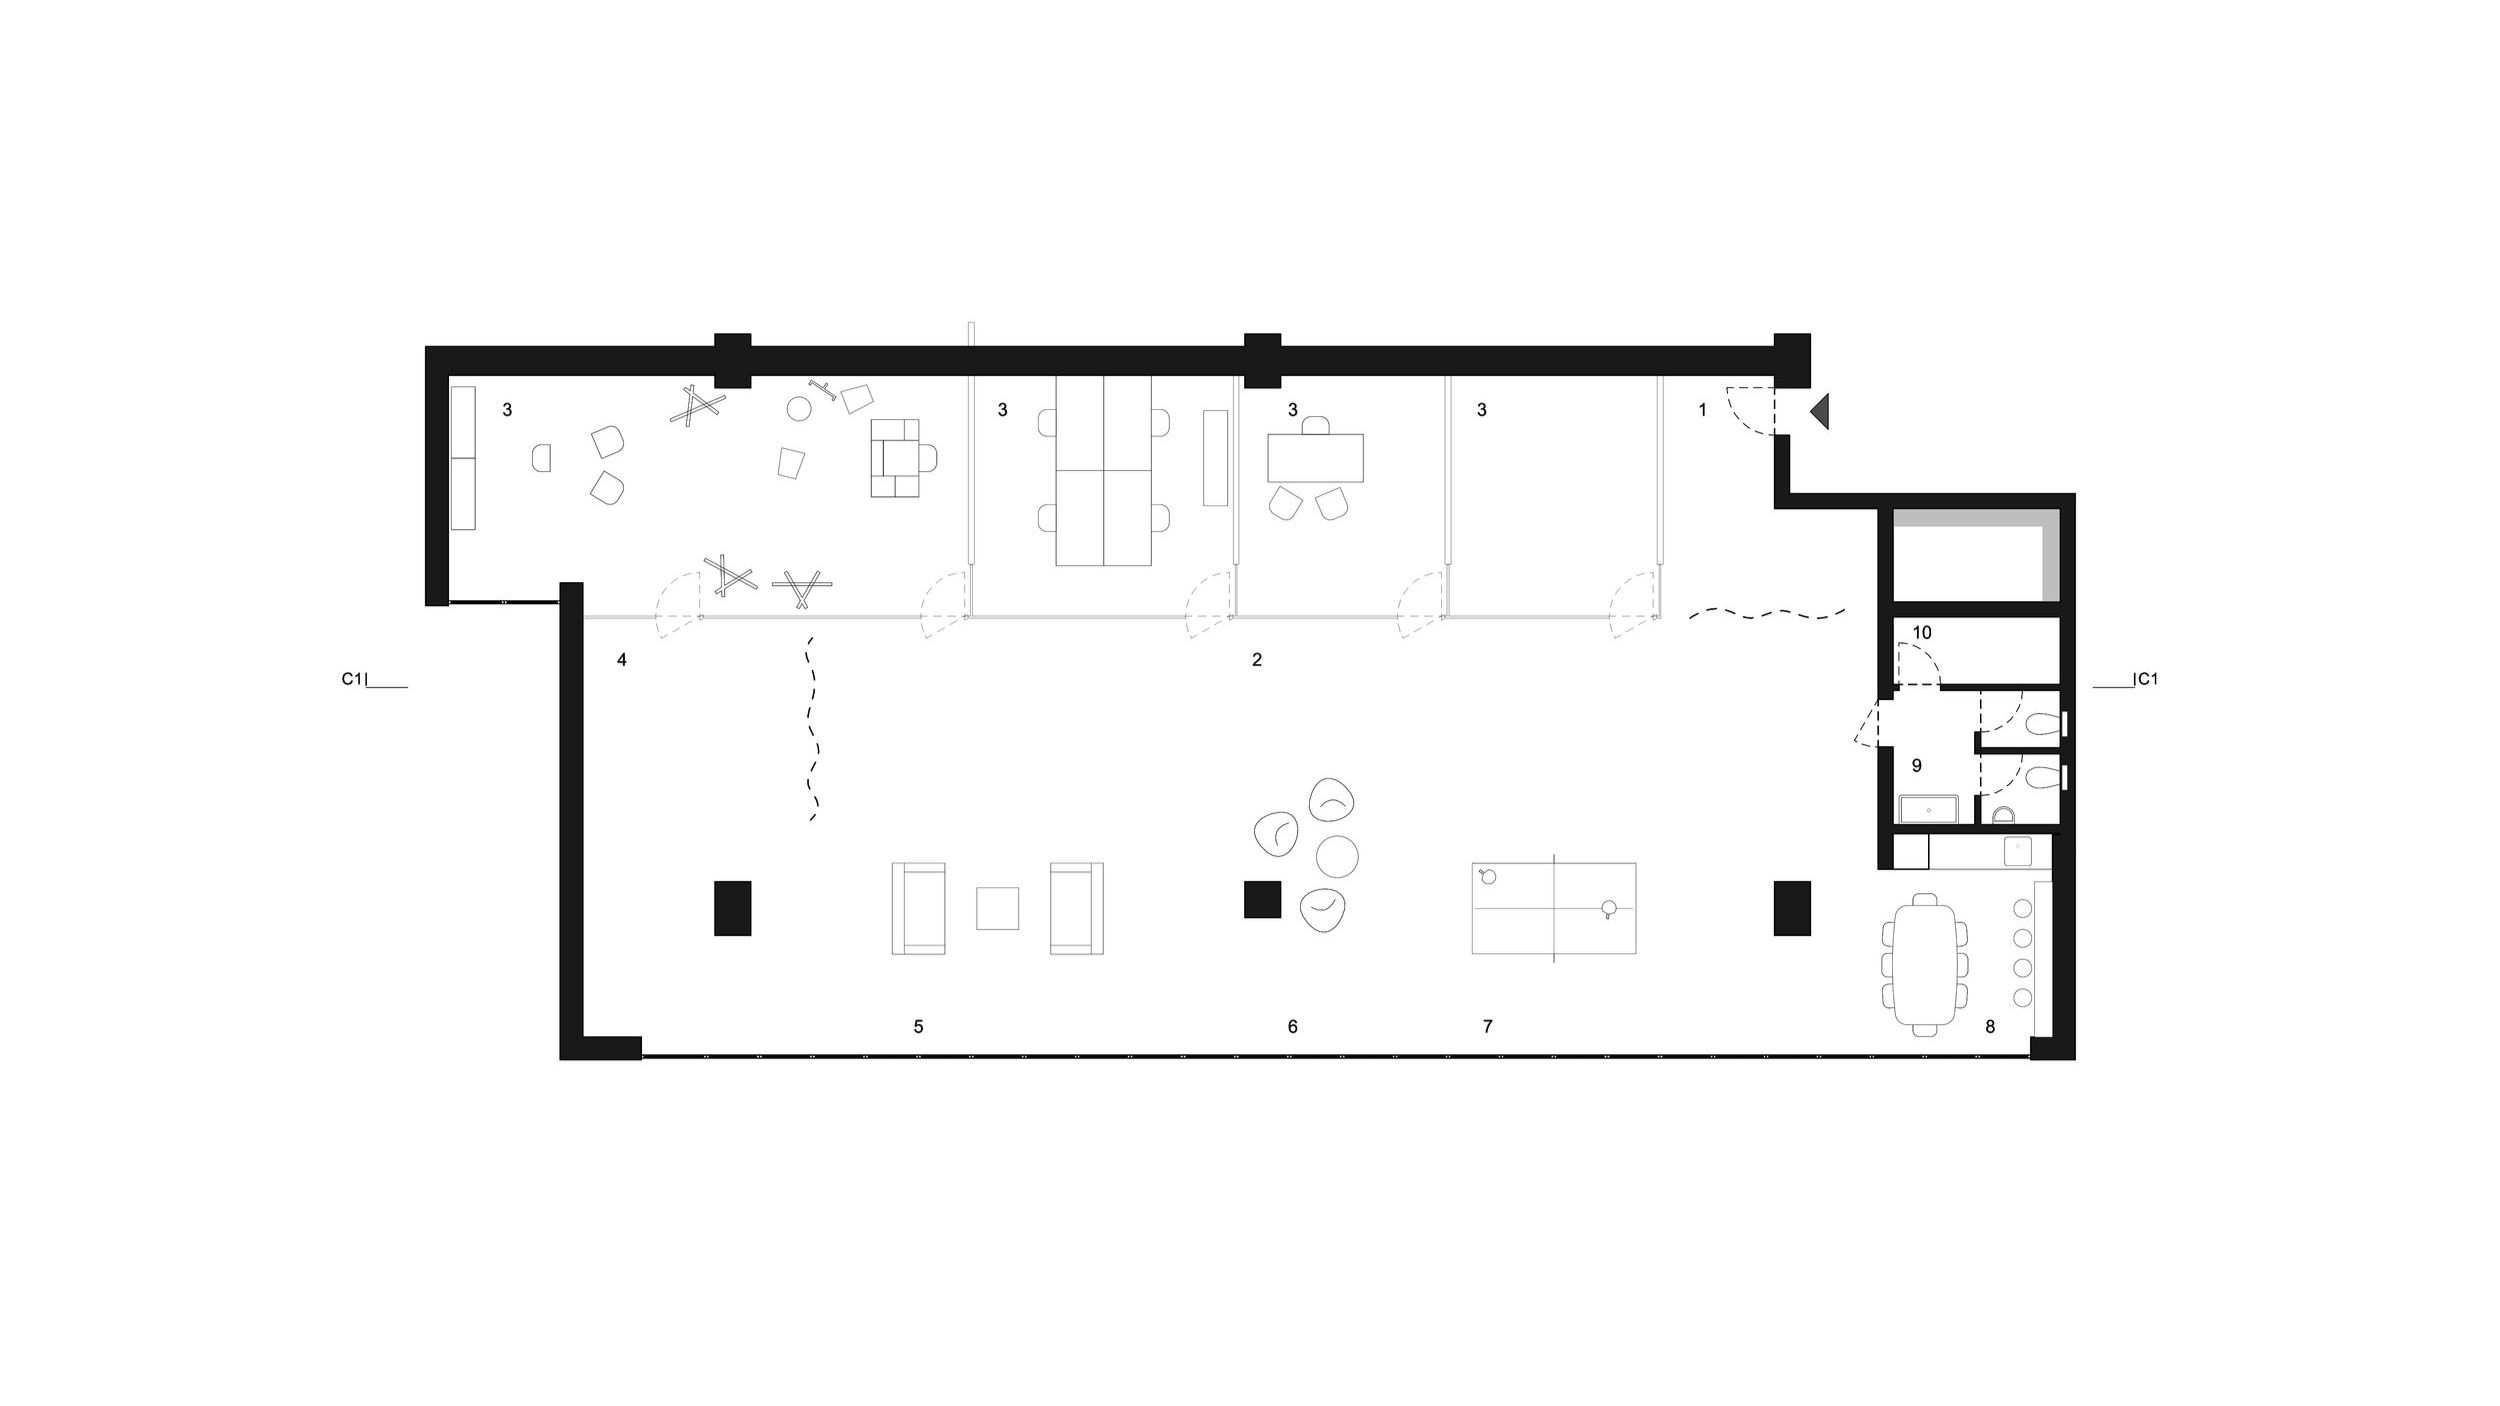 FLOOR PLAN _ 1 entrance hall . 2 circulation . 3 office . 4 photo shooting area . 5 lounge . 6 meeting corner . 7 playing area . 8 pantry . 9 toilets . 10 storage